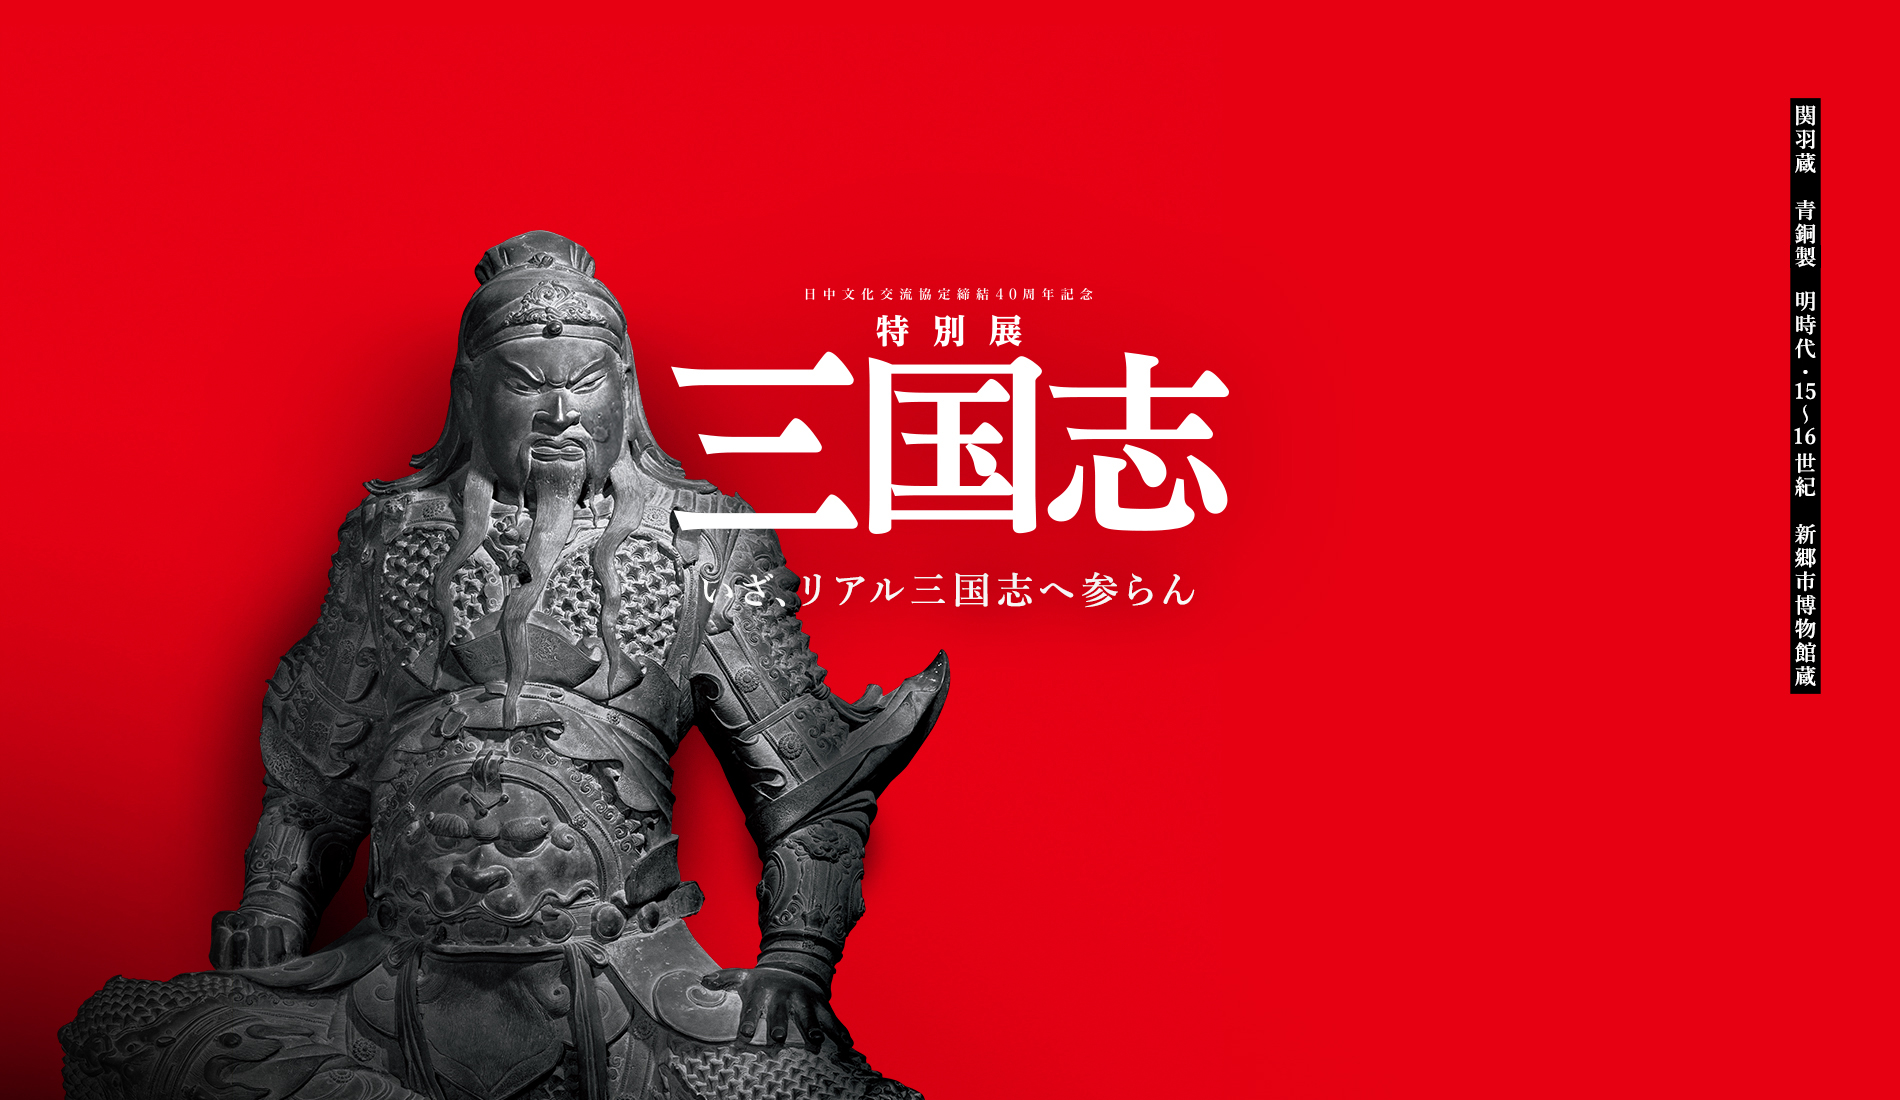 Celebrating the 40th Anniversary of the Japan–China Cultural Exchange Agreement Three Kingdoms Unveiling the Story